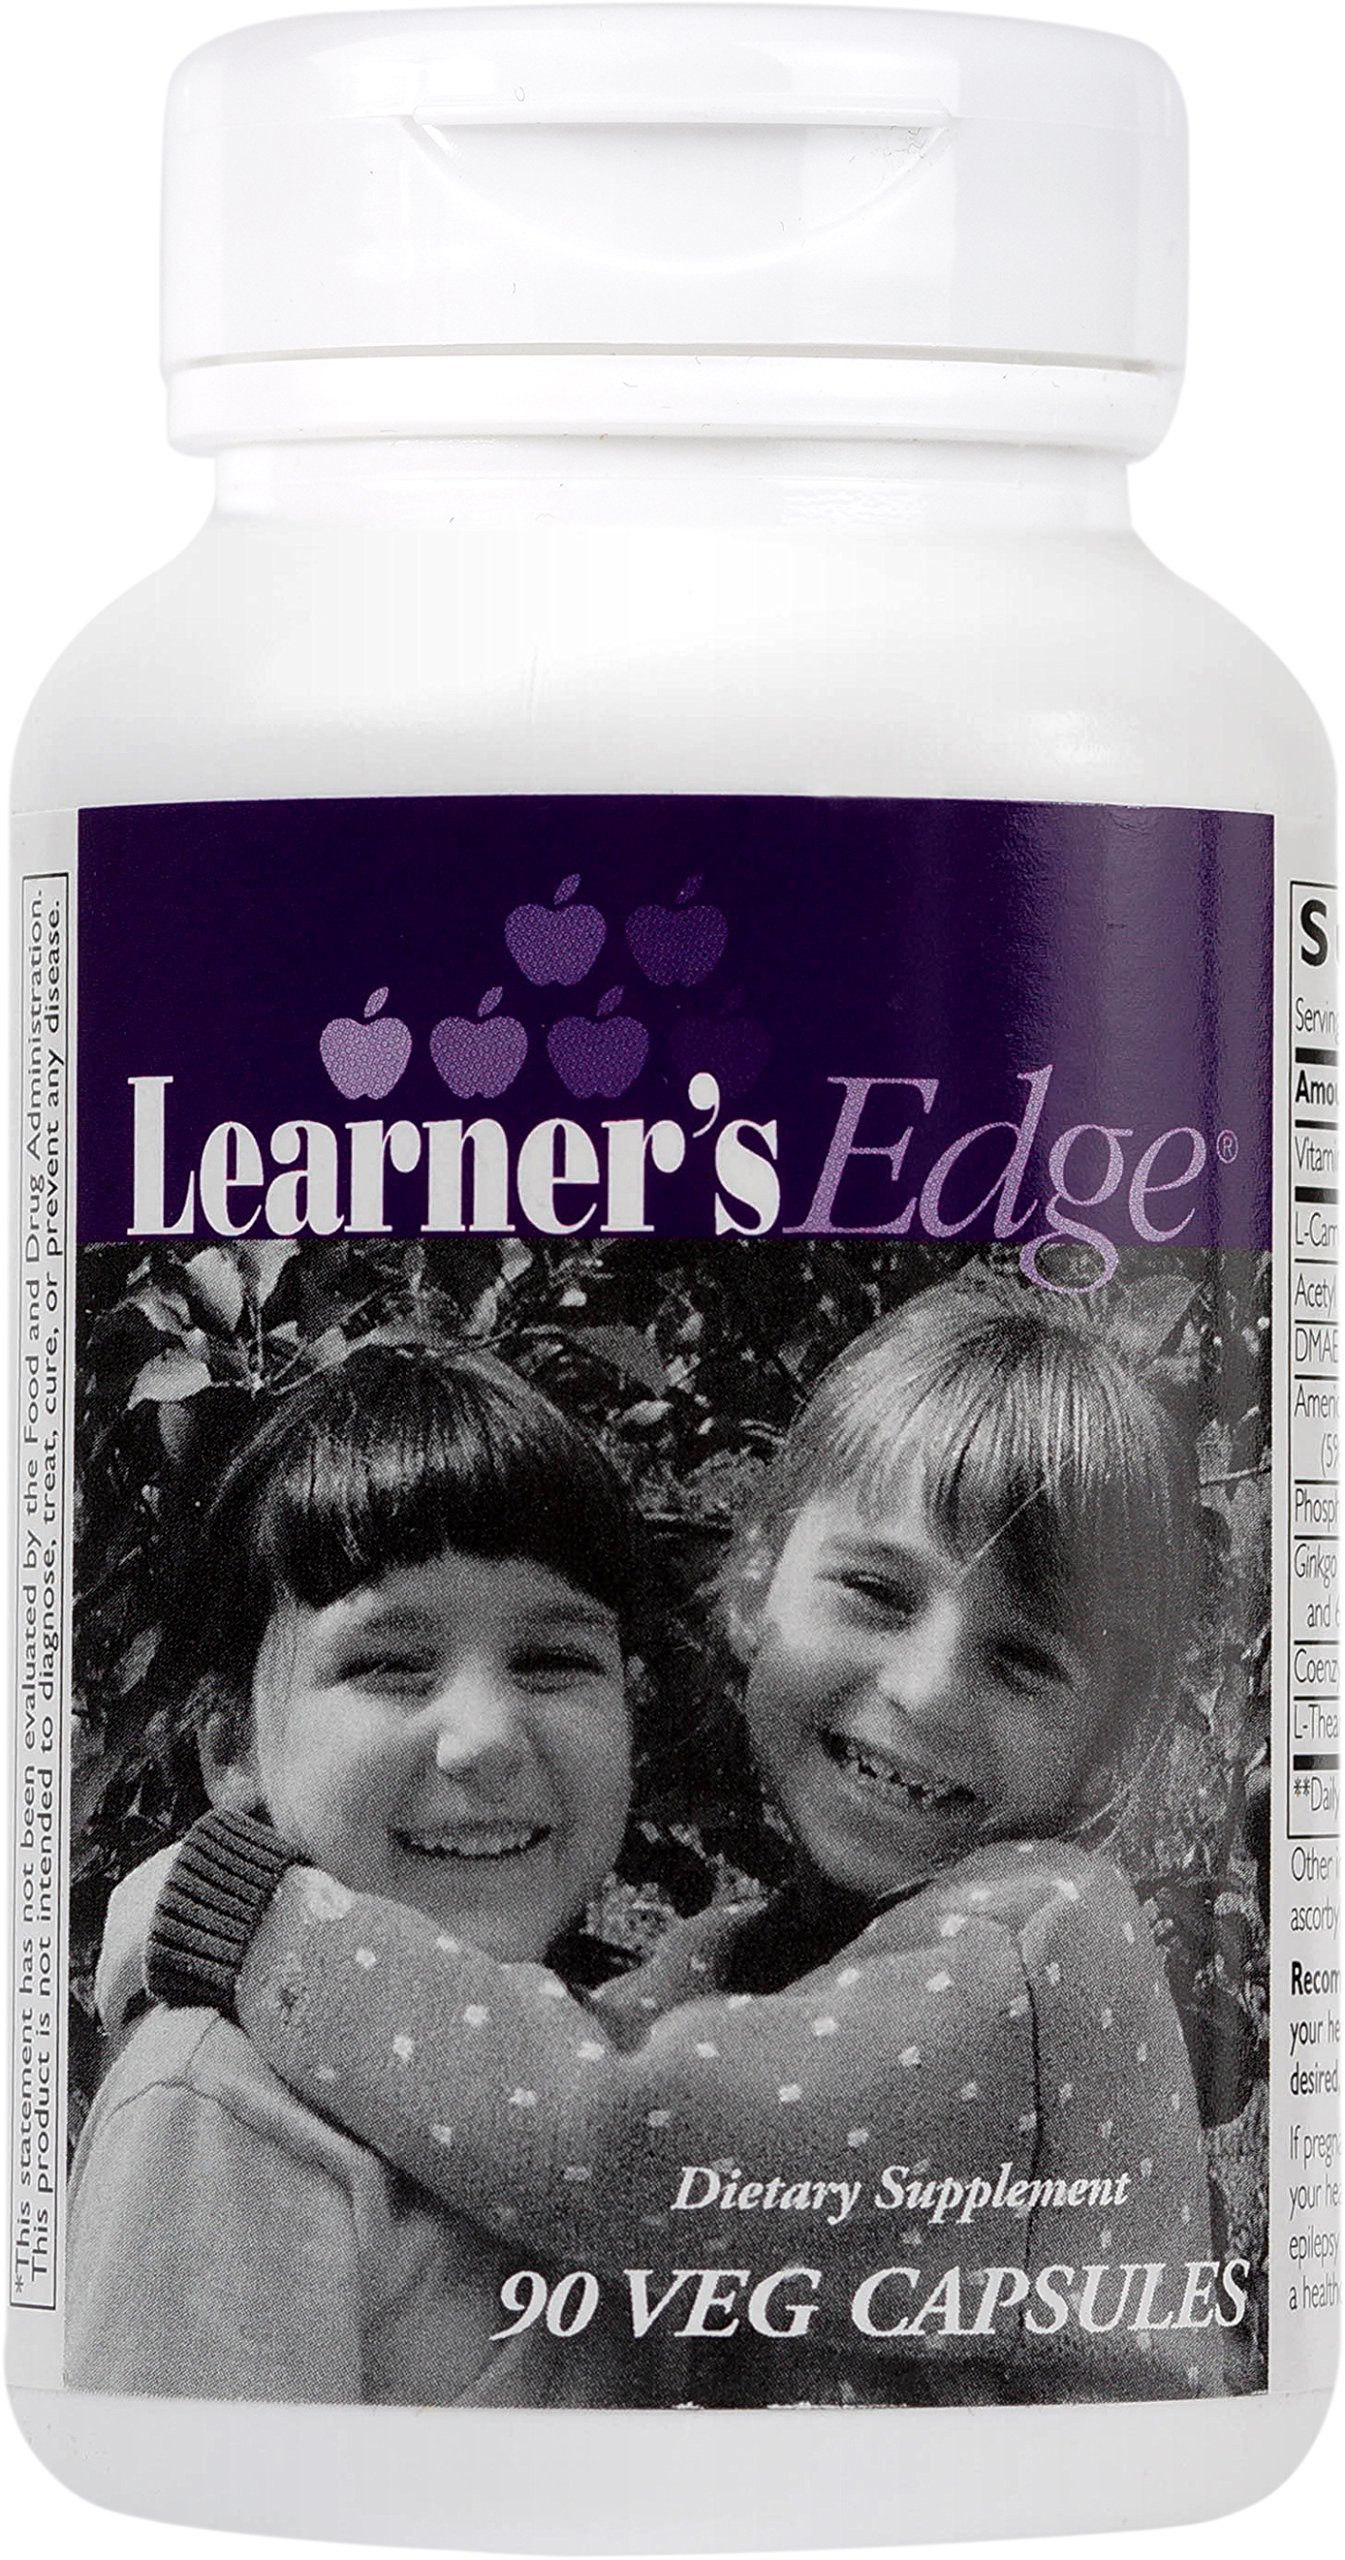 Enzymatic Therapy - Learner's Edge - Supports Healthy Neurological Development and Function in Children - 90 Capsules